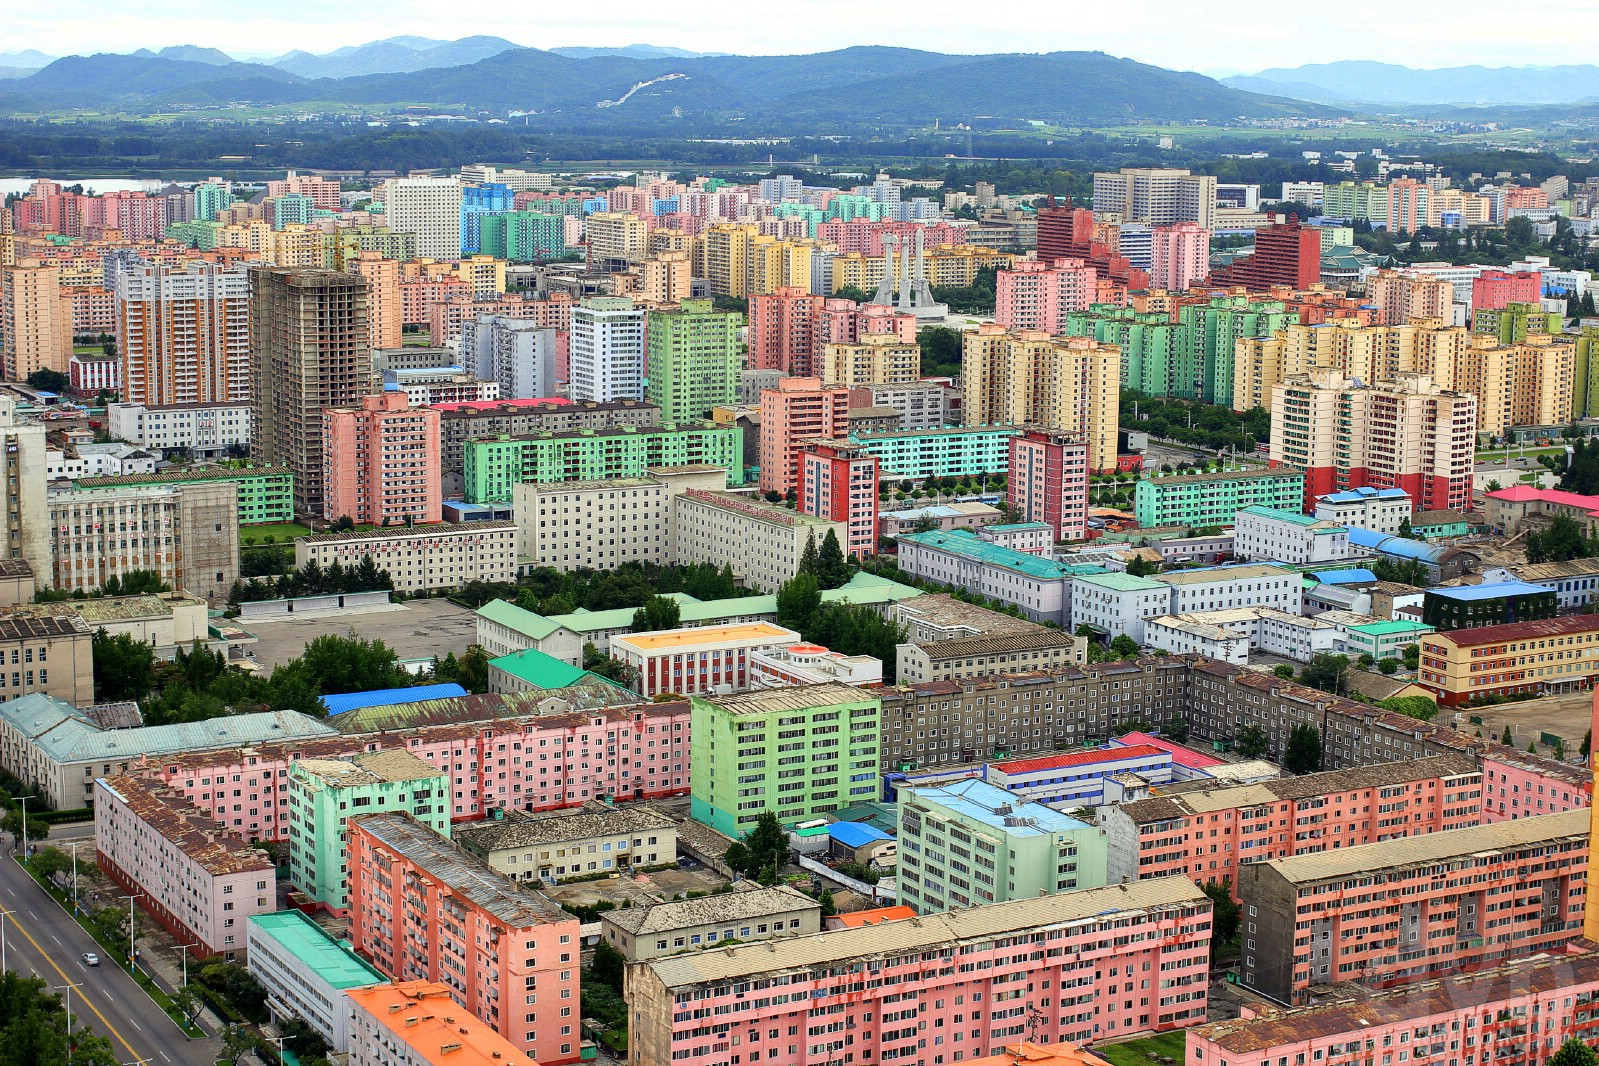 Colourful Pyongyang as seen from the top of the Juche Tower in Pyongyang, North Korea. August 15, 2017.